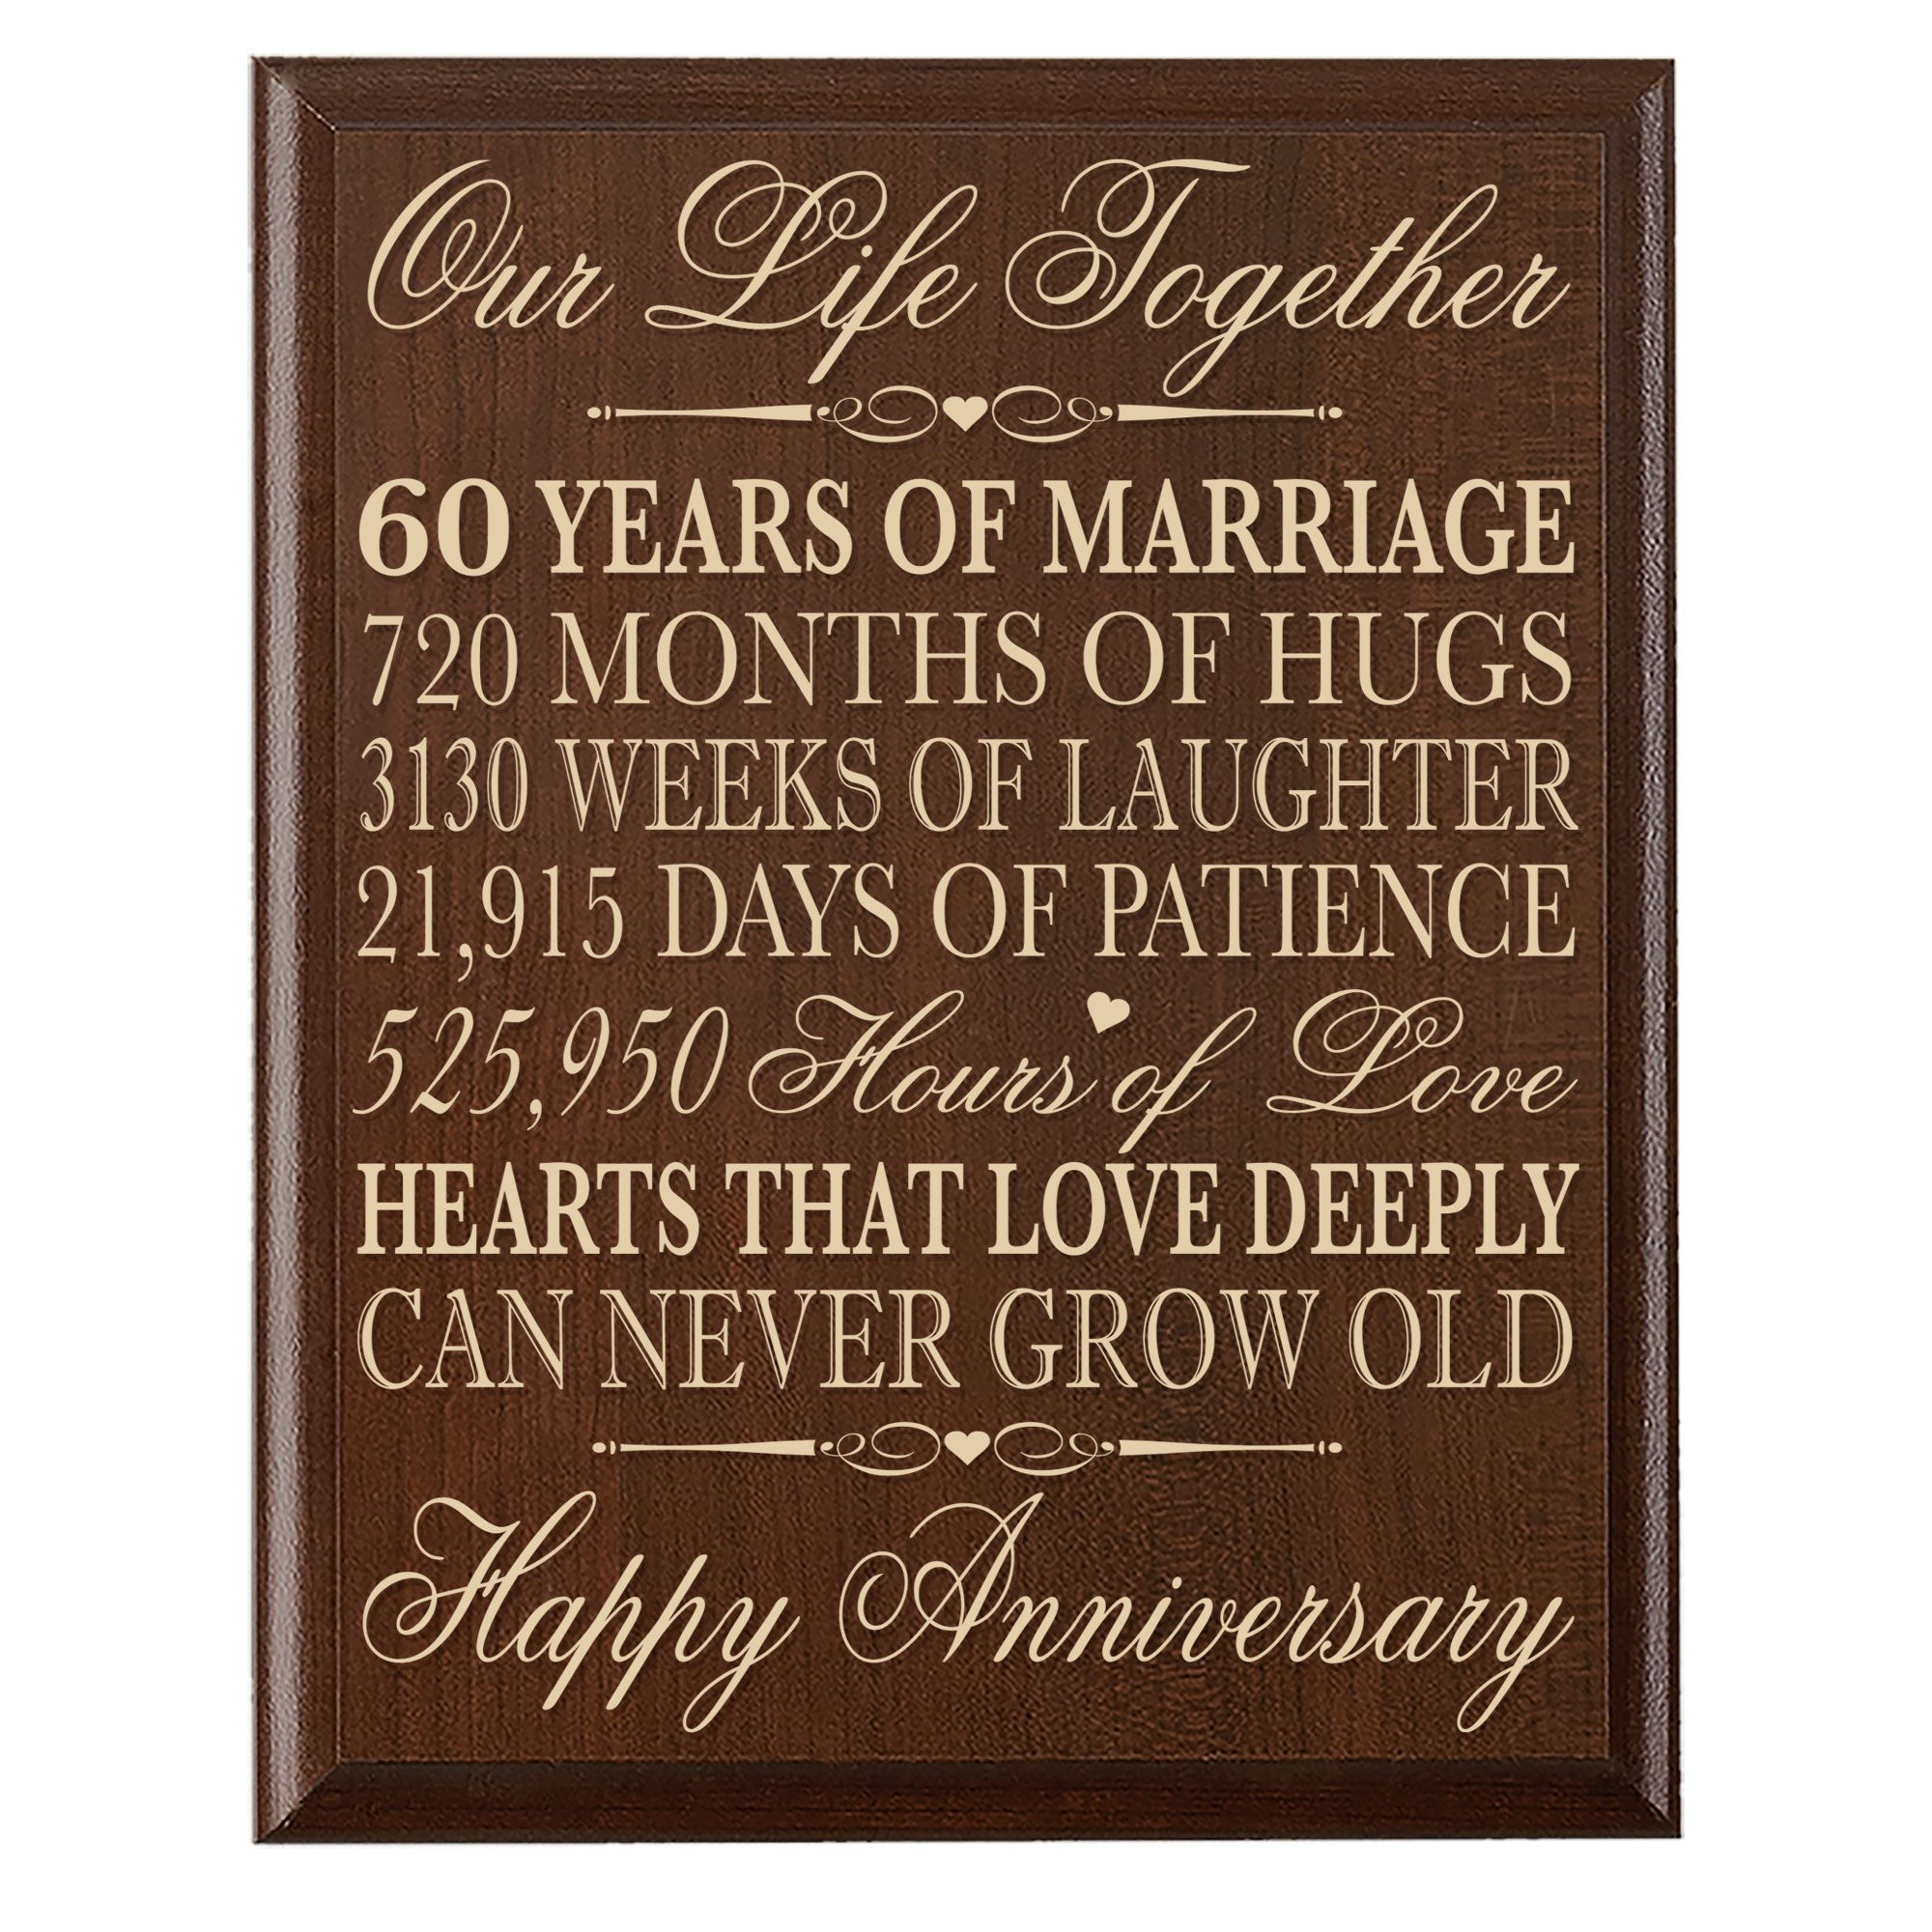 60 Wedding Anniversary Gift Ideas  60th Wedding Anniversary Wall Plaque Gifts for Couple